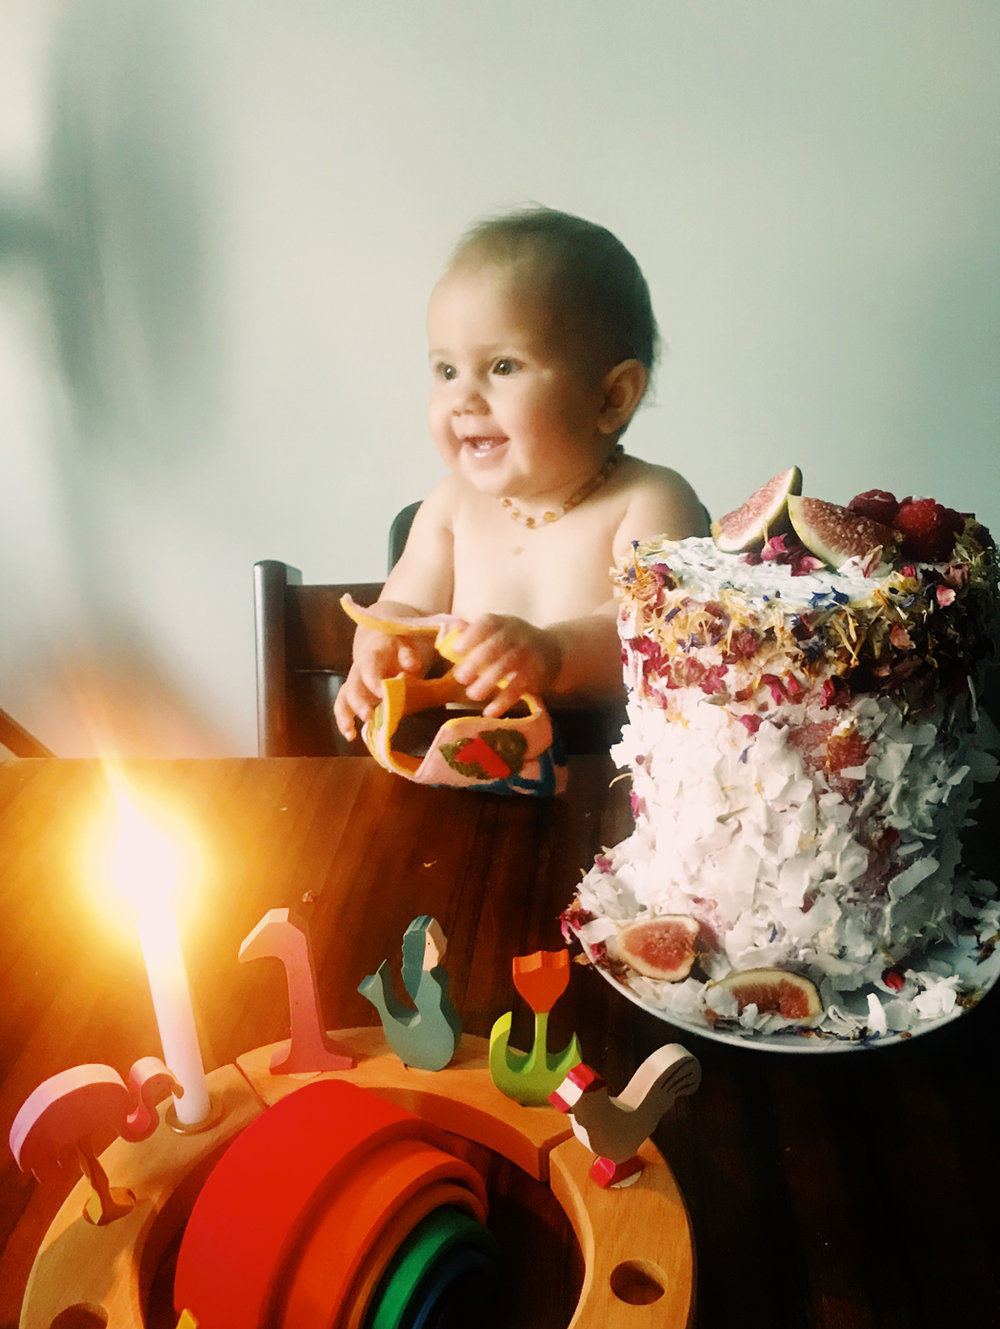 vegan kids birthday 07.jpg